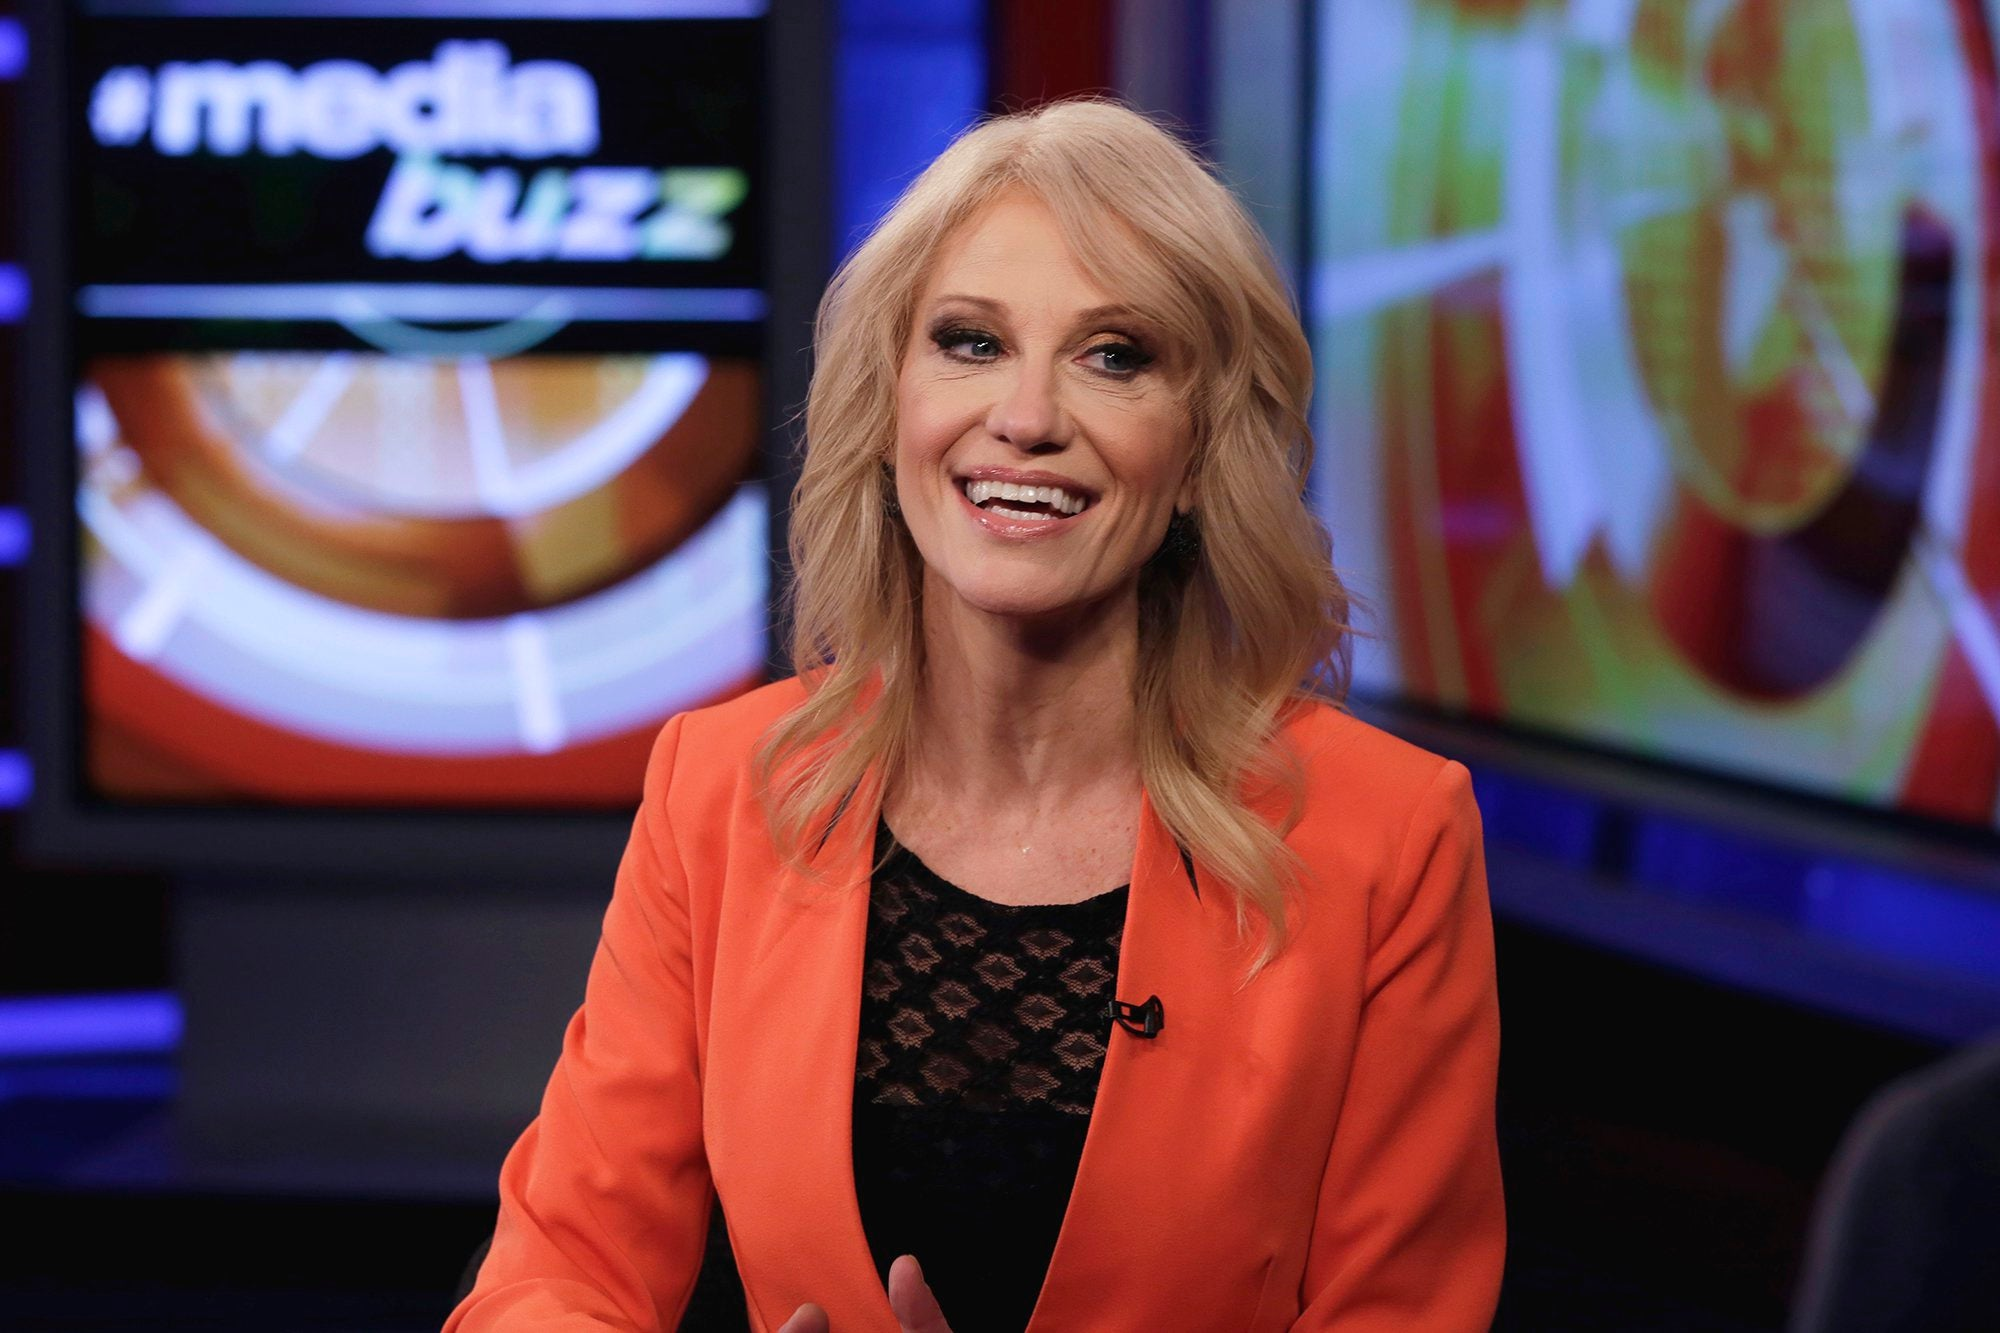 Kellyanne Conway Says 'I Don't Have Any Evidence' of Trump's Wiretap Claim